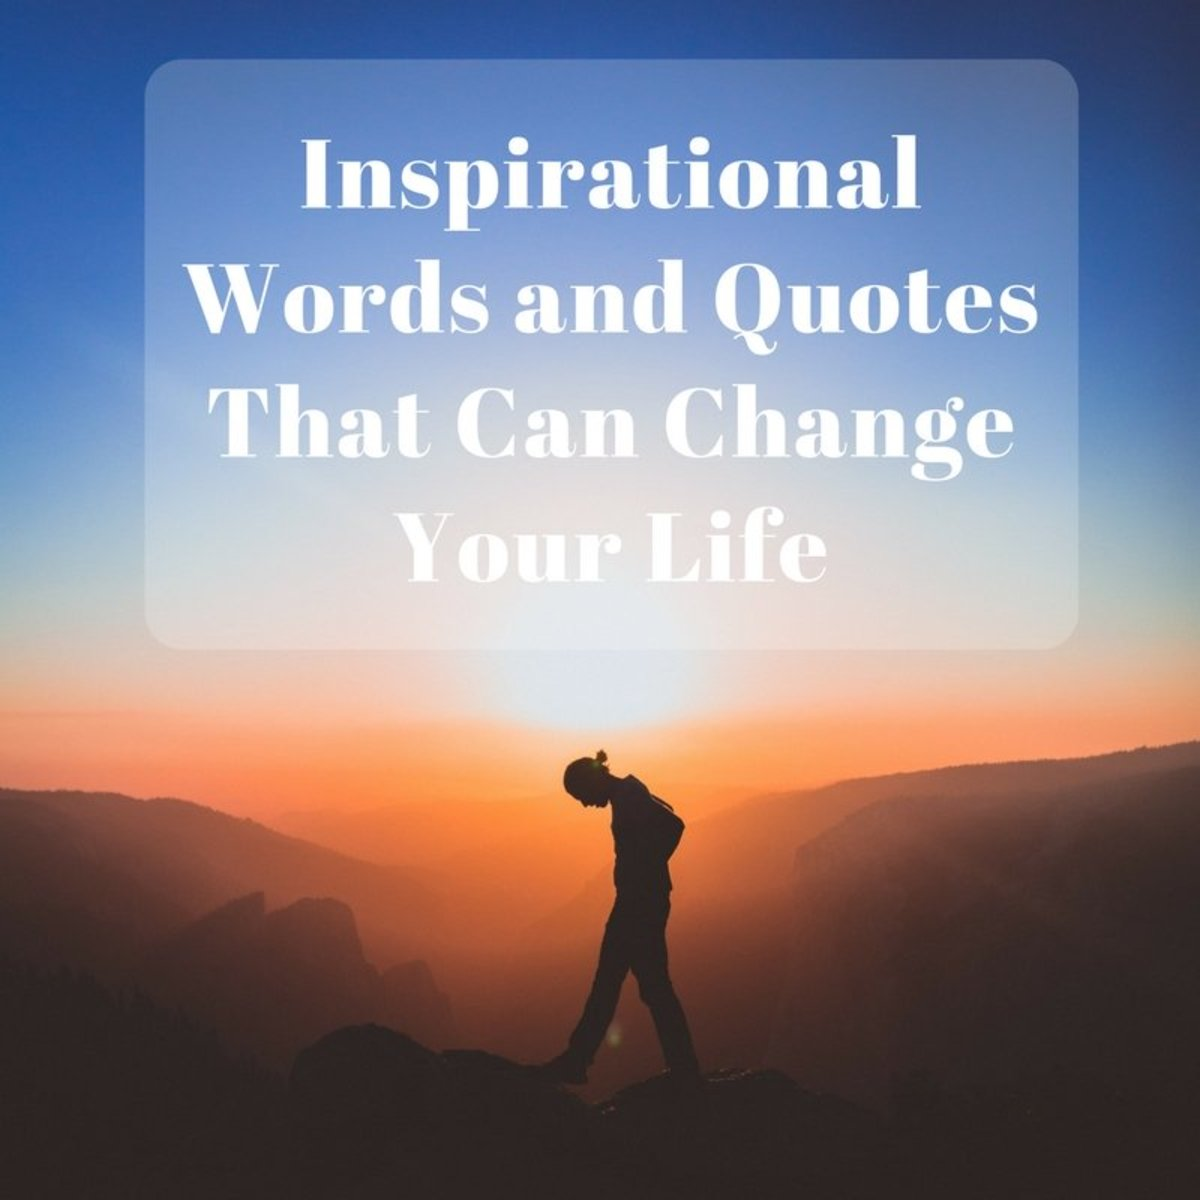 50 Motivational Words And Quotes That Can Change Your Life Holidappy Celebrations